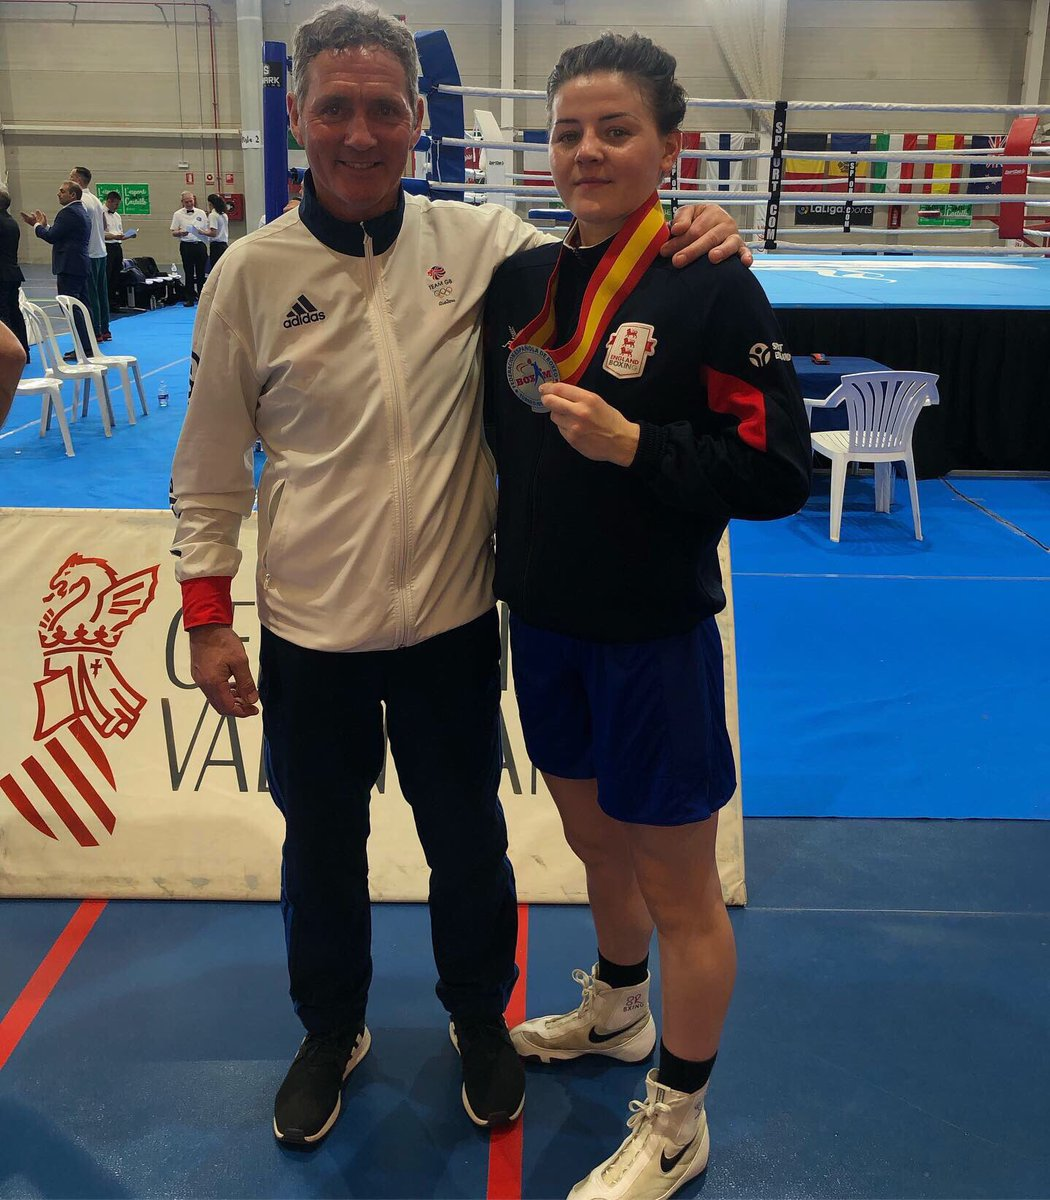 WINNER!! Congratulations to Derby boxer  @sandyryan93 who has won gold at her first tournament of 2019 in Valencia. Beating France in the final... #bbcboxing